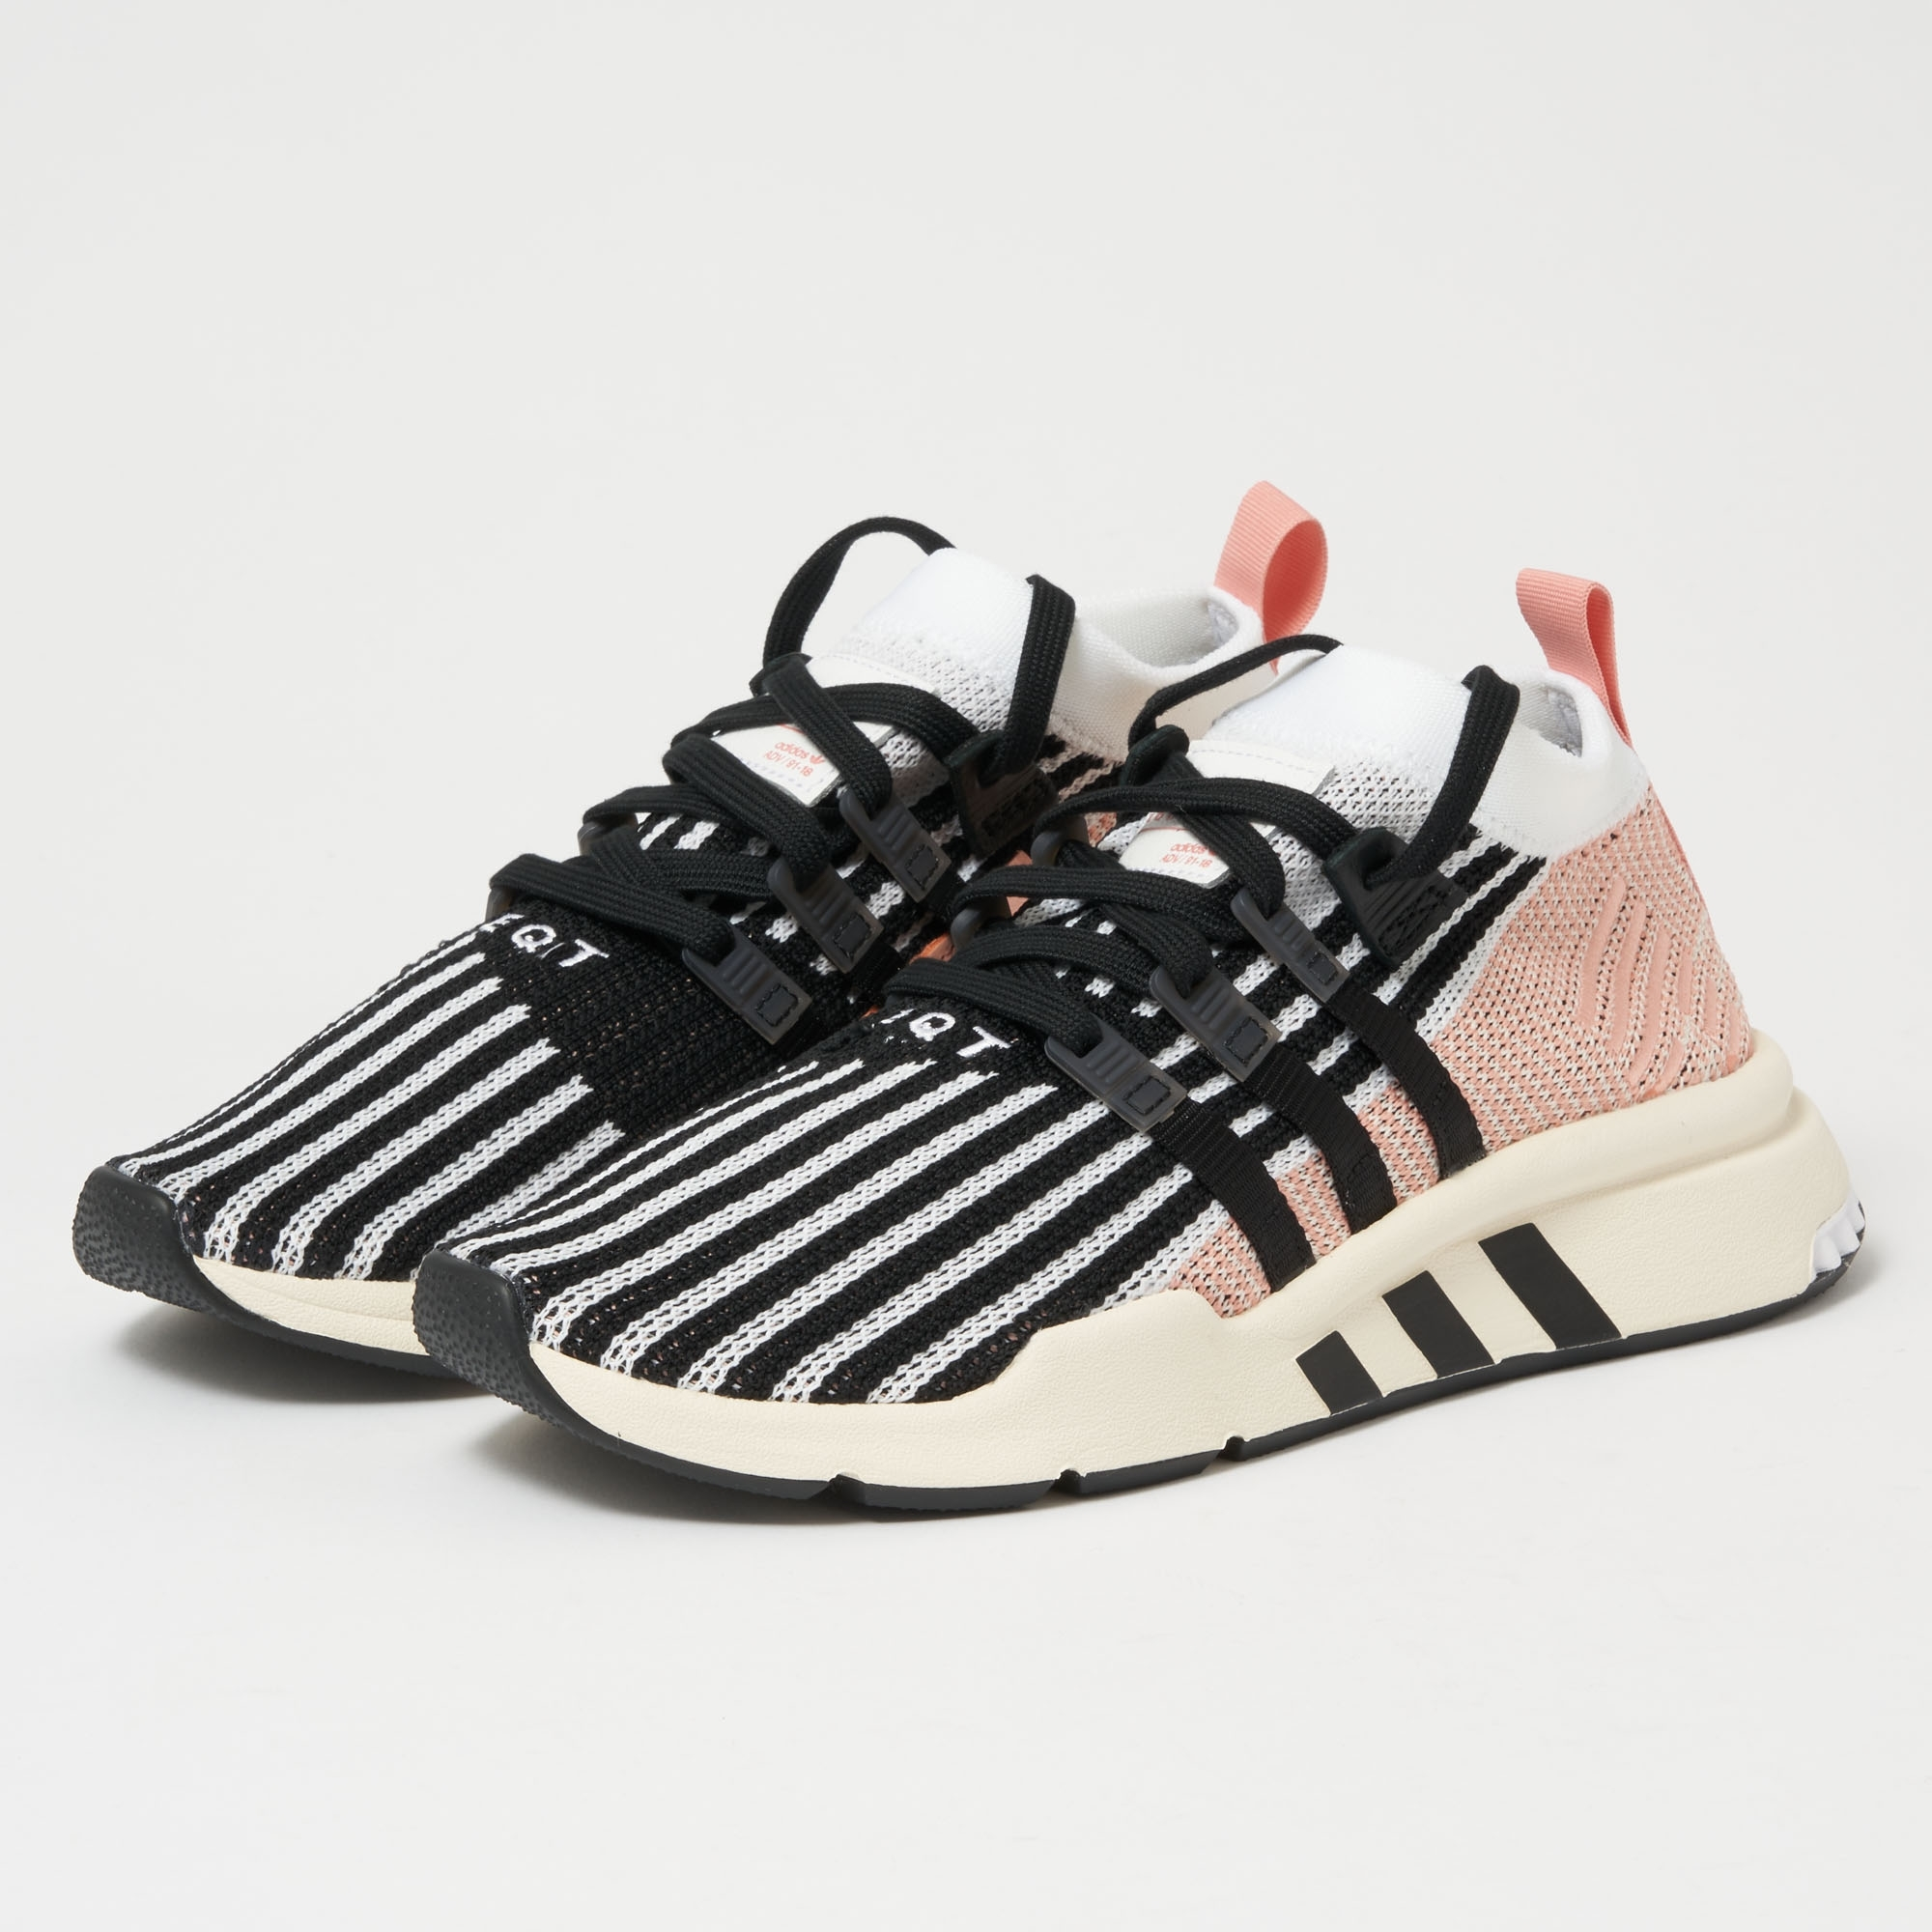 new arrival 25d71 1bc47 EQT Support Mid ADV Primeknit - FTWR White, Core Black amp Trace Pink